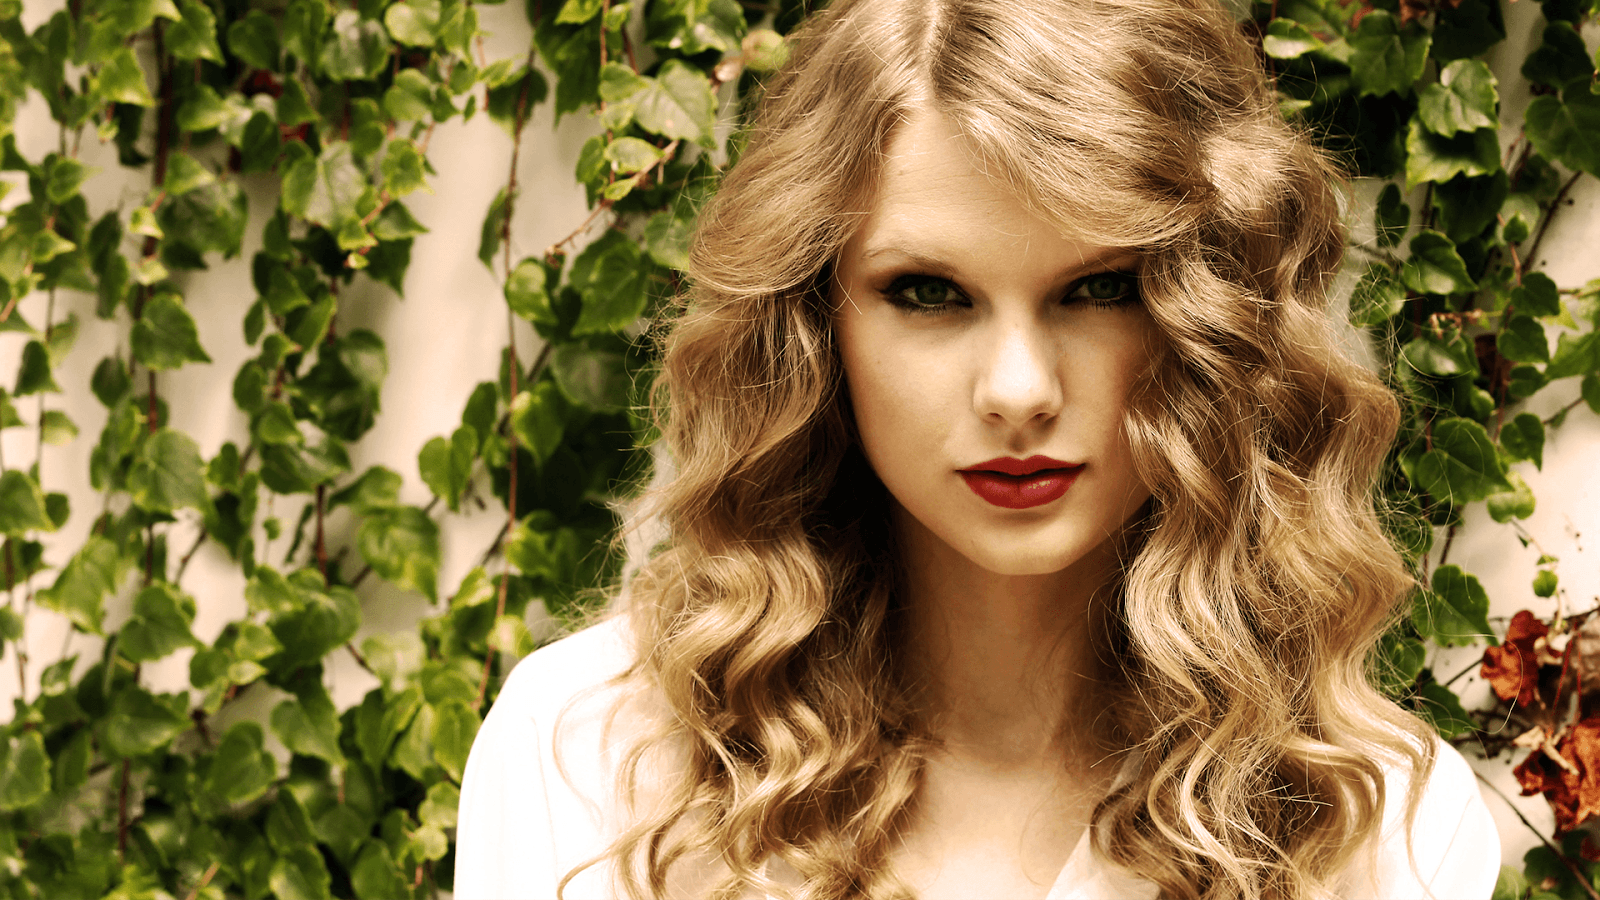 Taylor Swift Wallpaper HD Pictures | Download Wallpaper ...